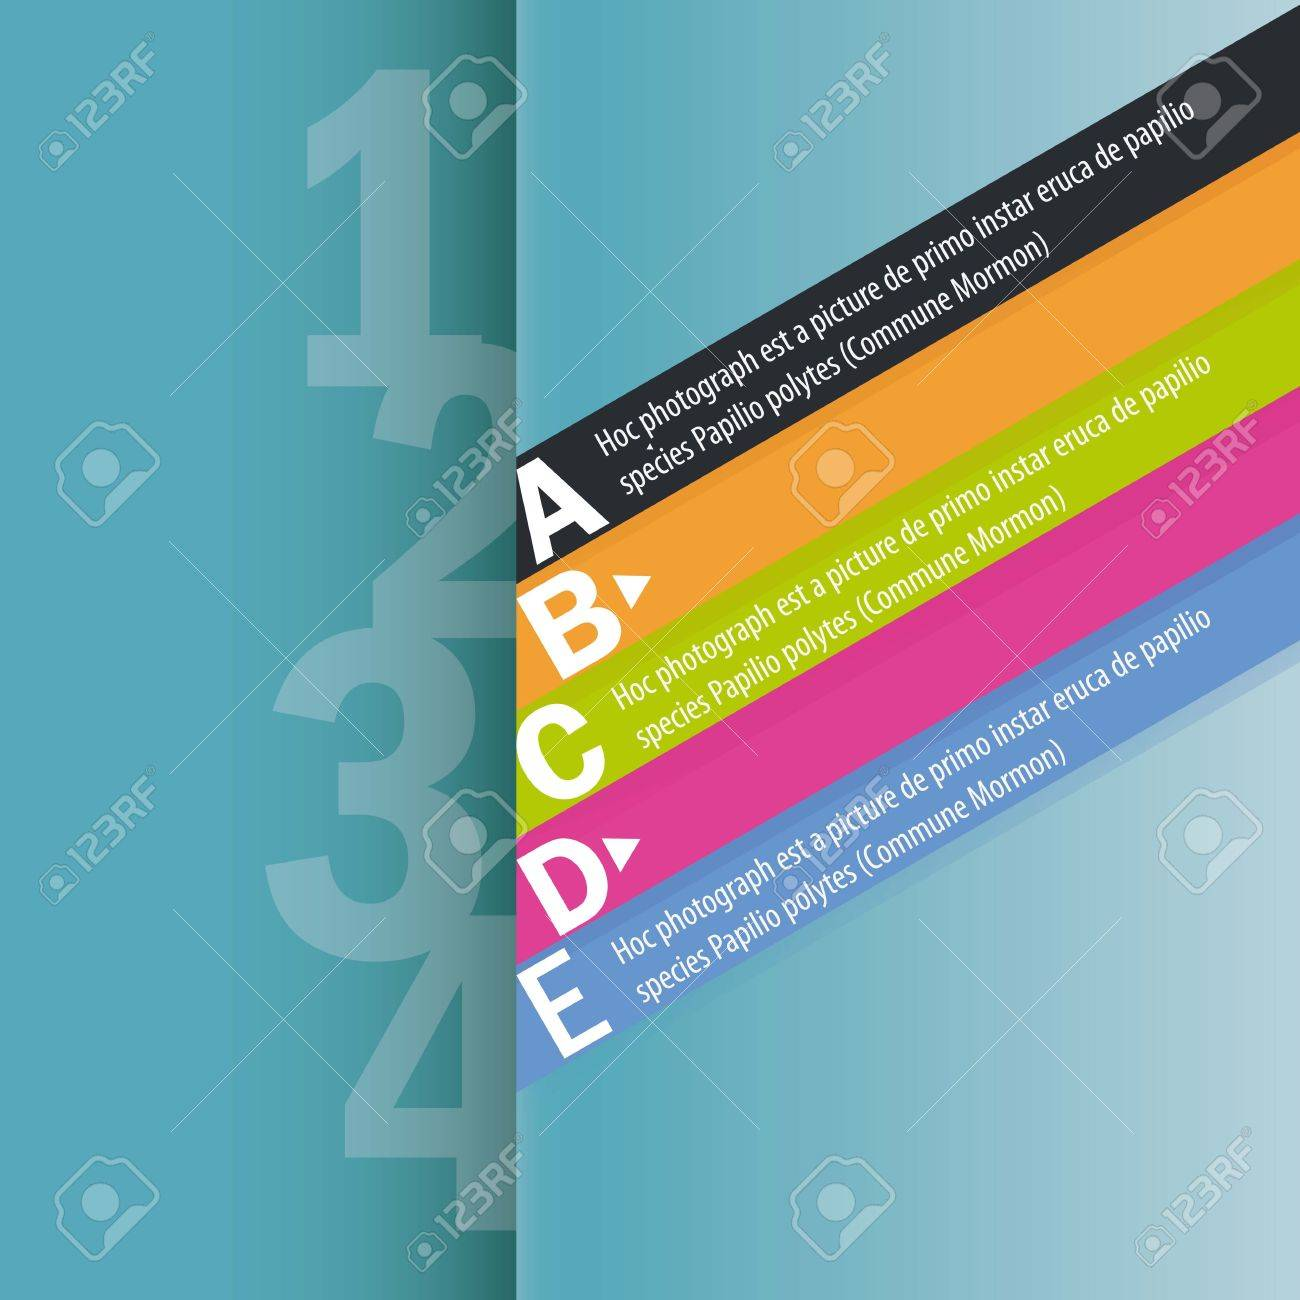 Design template. Suitable for all kinds of advertising and for infographics. Stock Vector - 16841404